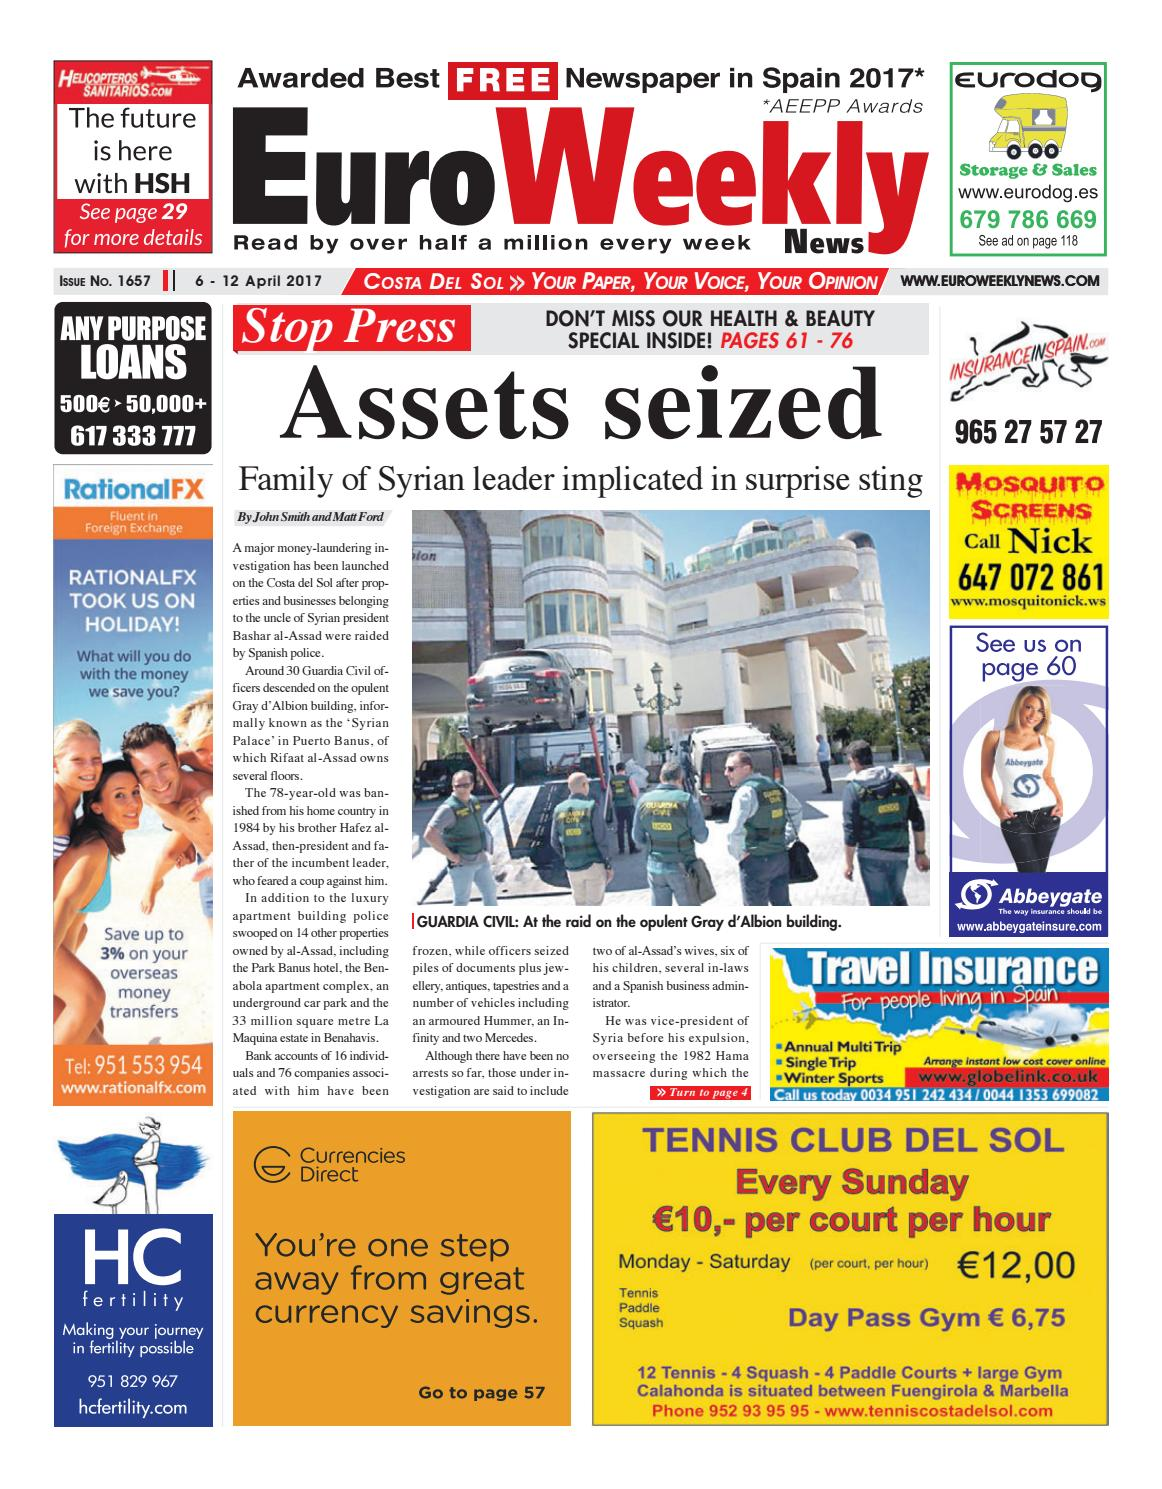 c11ee1b6cb7e Euro Weekly News - Costa del Sol 6 - 12 April 2017 Issue 1657 by Euro  Weekly News Media S.A. - issuu